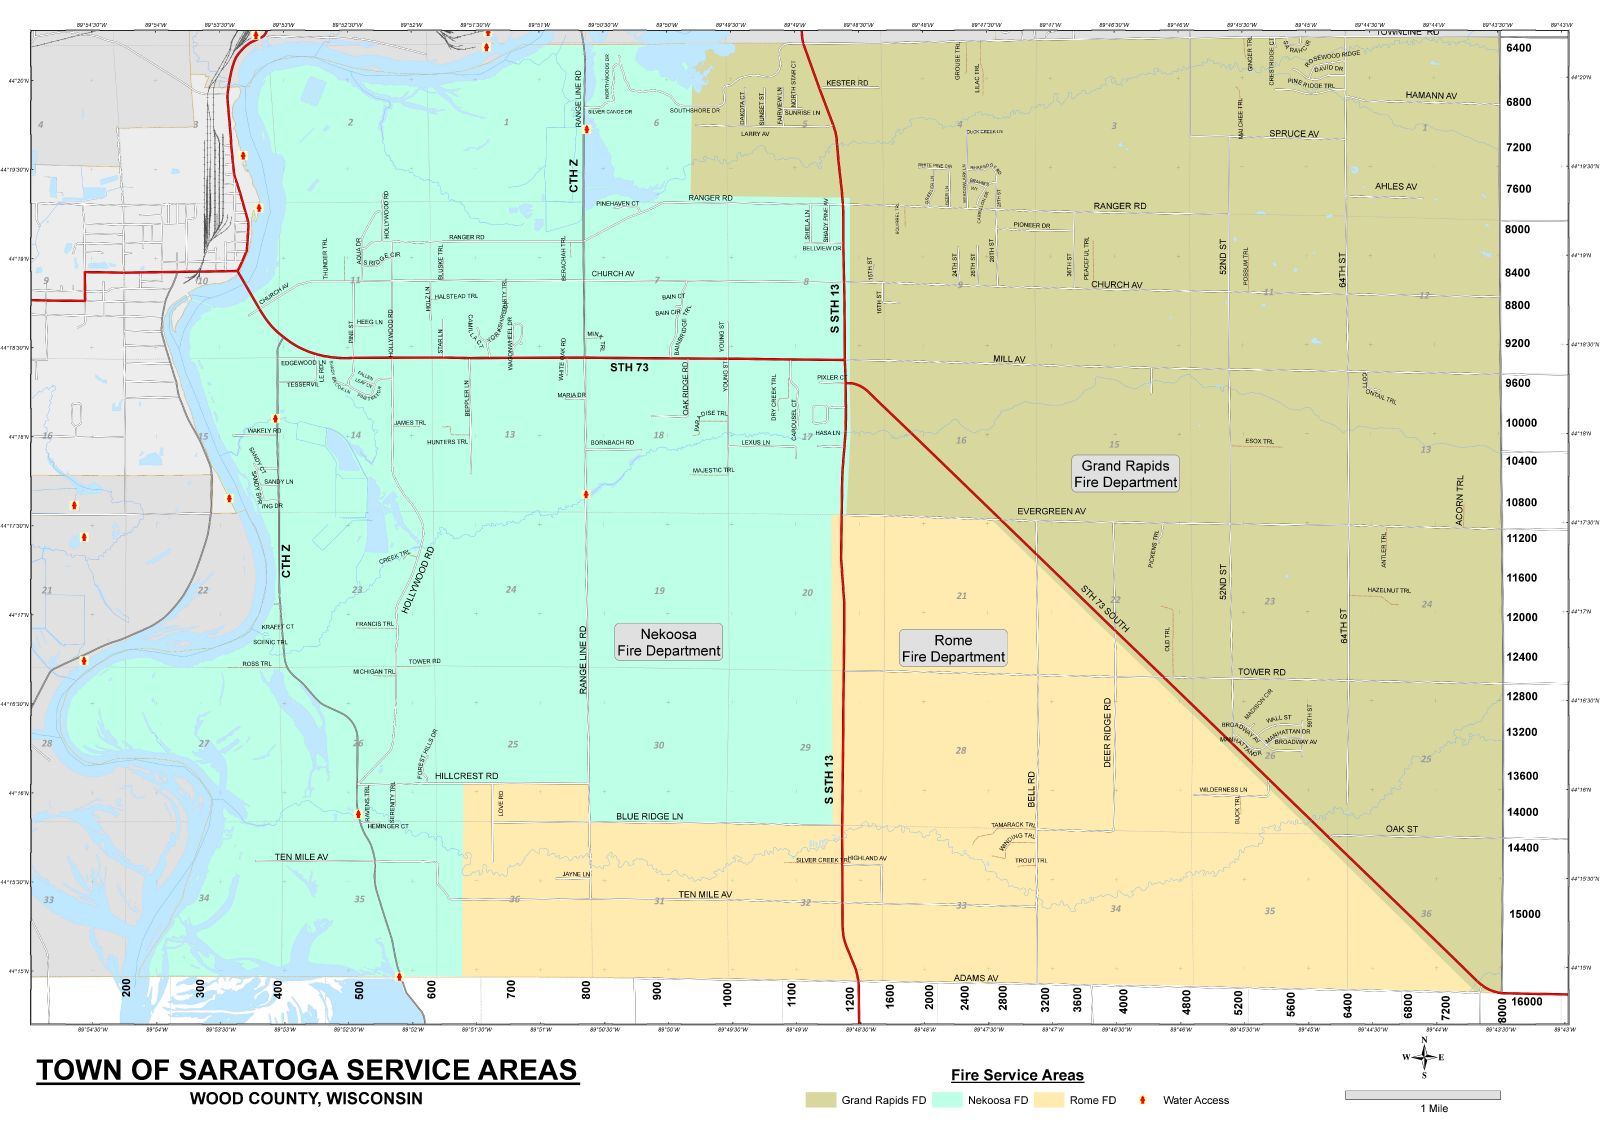 Grand Rapids Fire Departments coverage map for the Town of Saratoga, Wood County